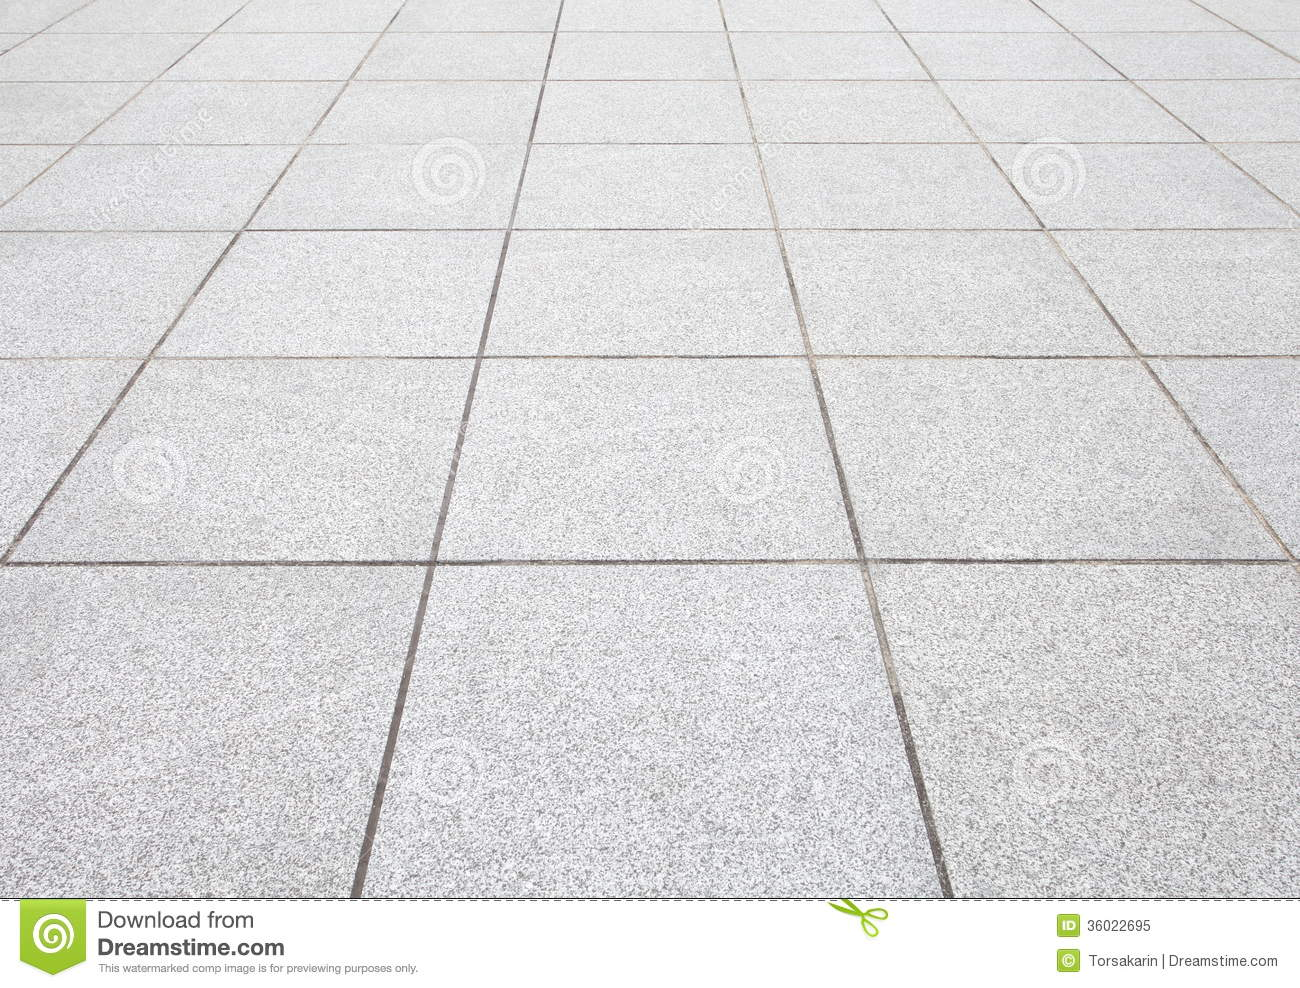 Harmonic Floor Tiles Background Royalty Free Stock Photo - Image ...